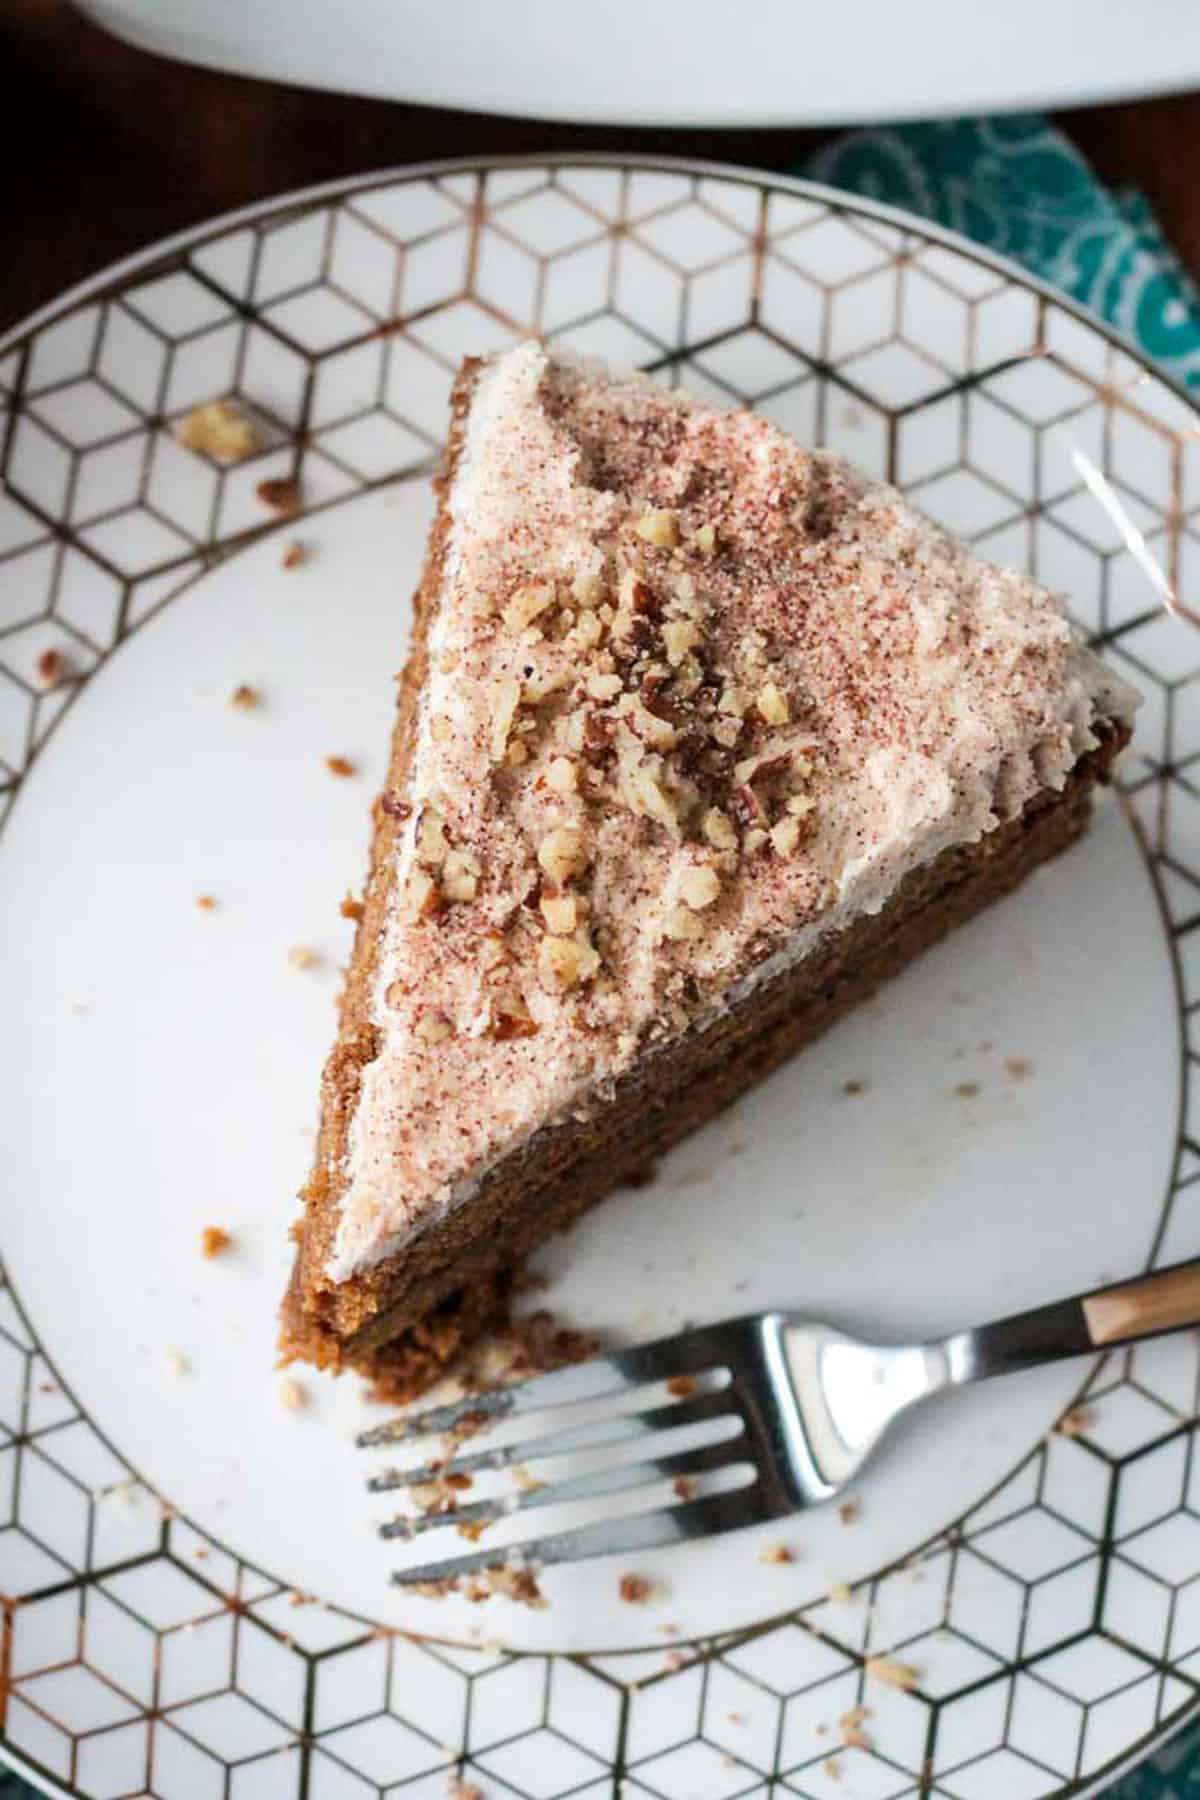 Overhead view of a slice of frosted cake sprinkled with chopped nuts.